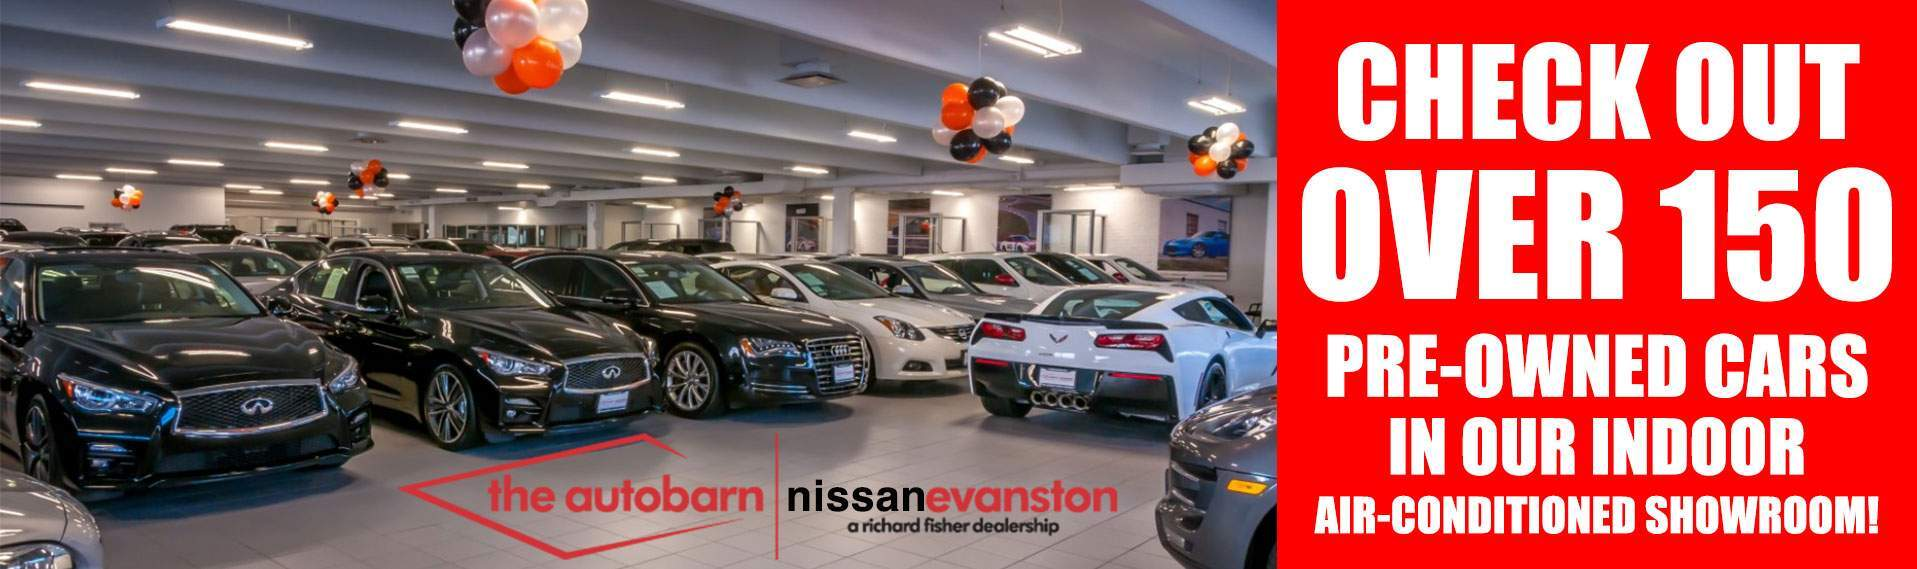 The Autobarn Nissan Evanston Indoor